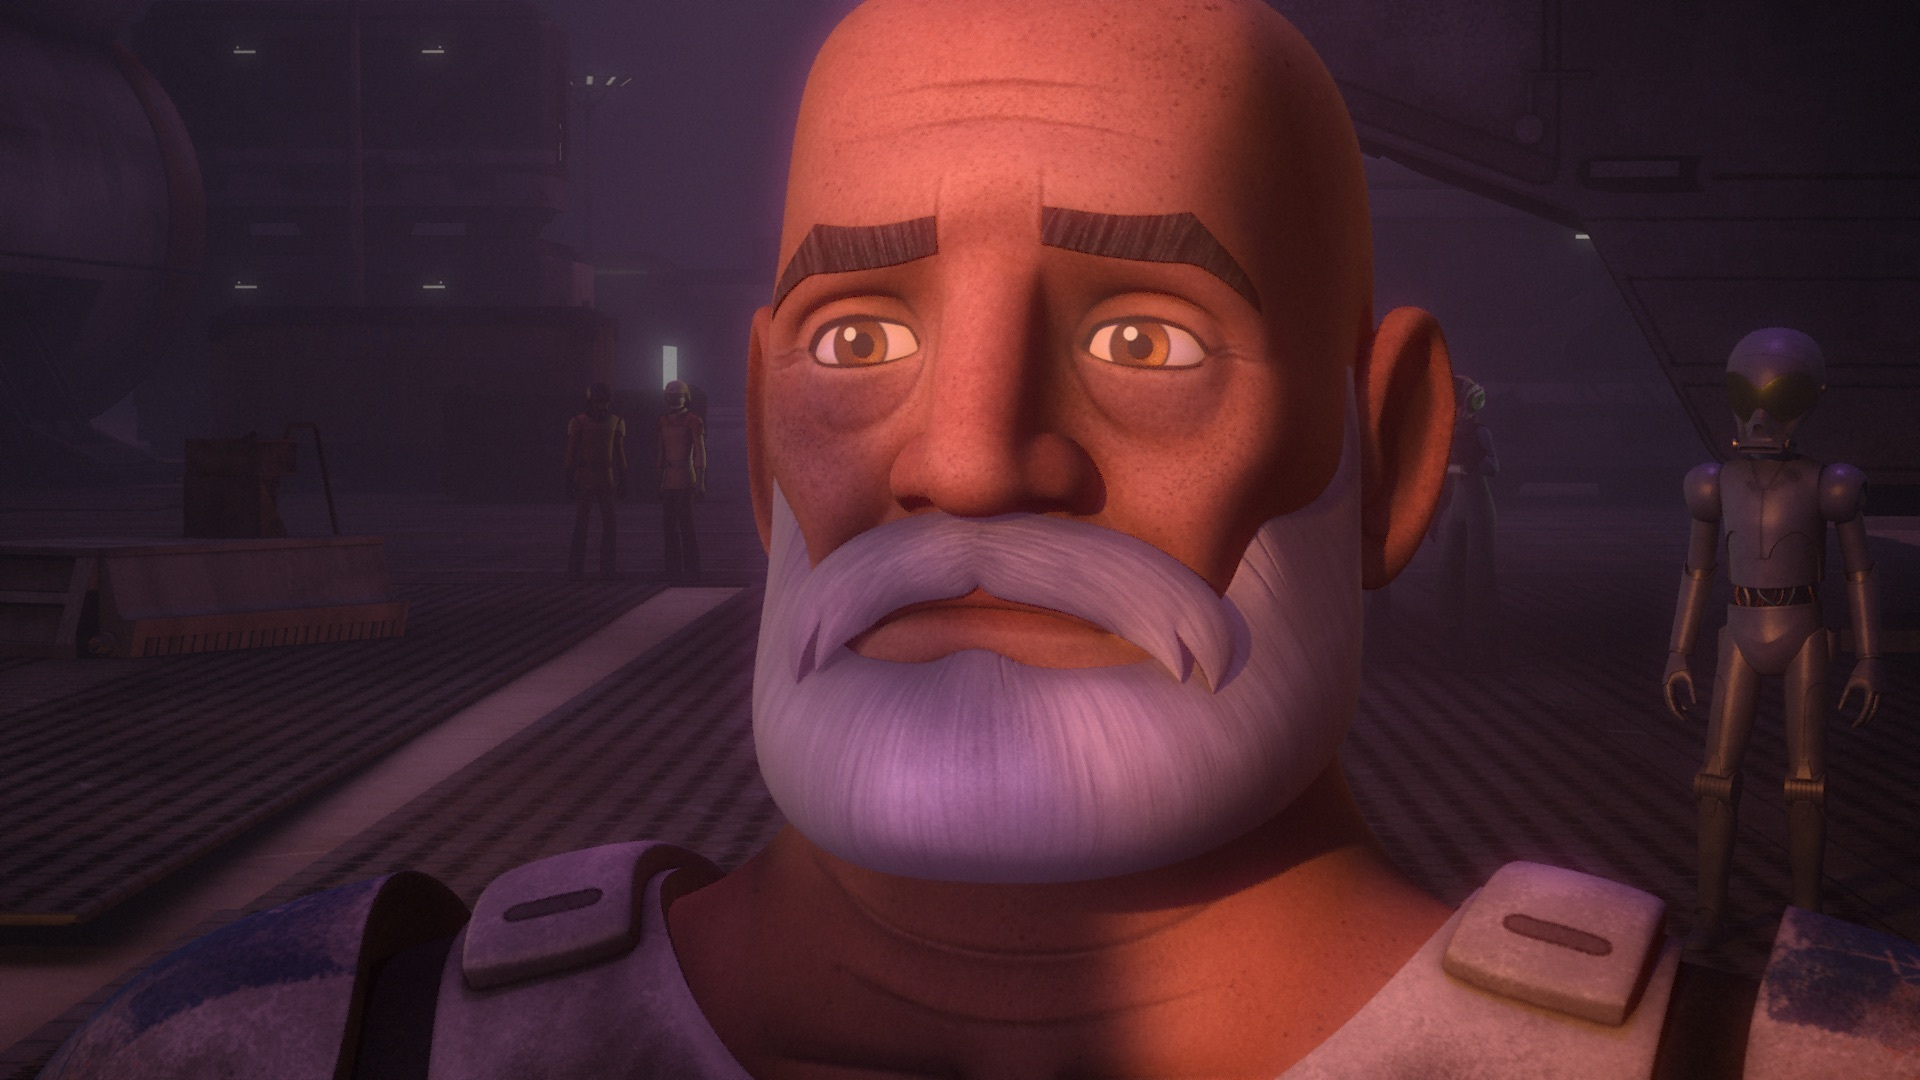 Star Wars Rebels - Rex at the end of Twilight of Apprentice